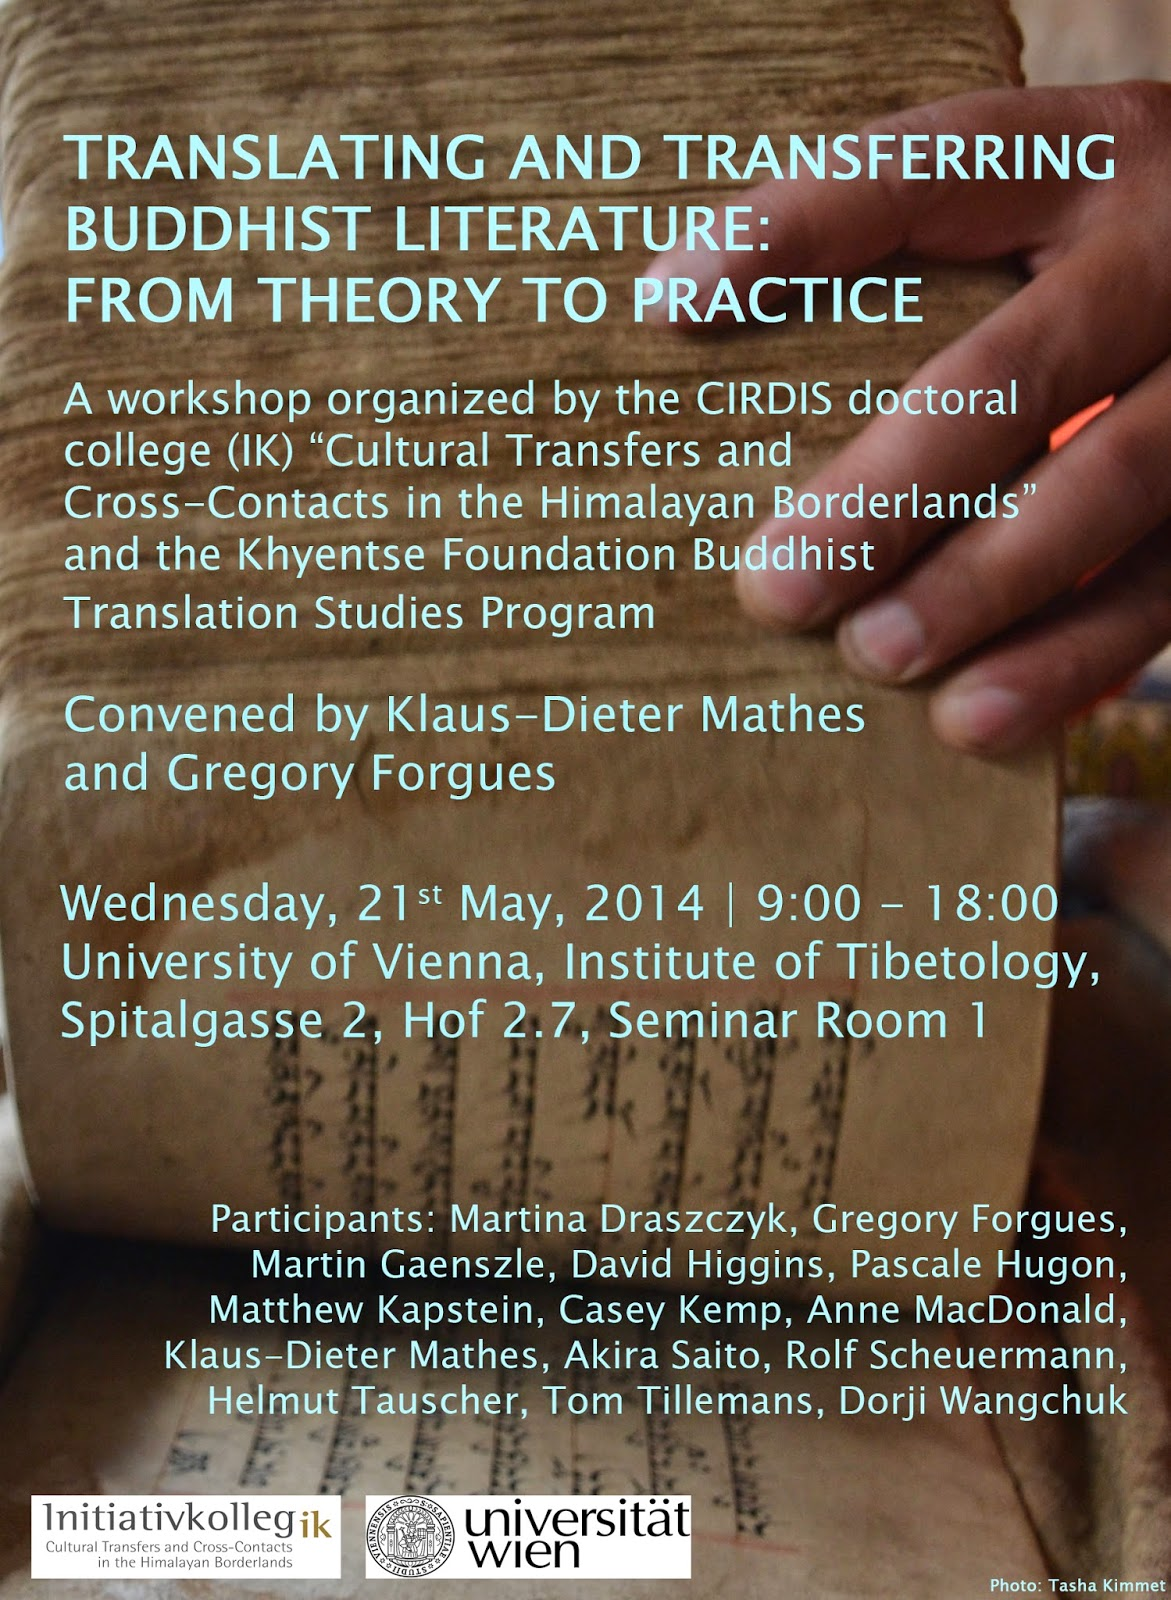 Poster for the workshop on Buddhist translation